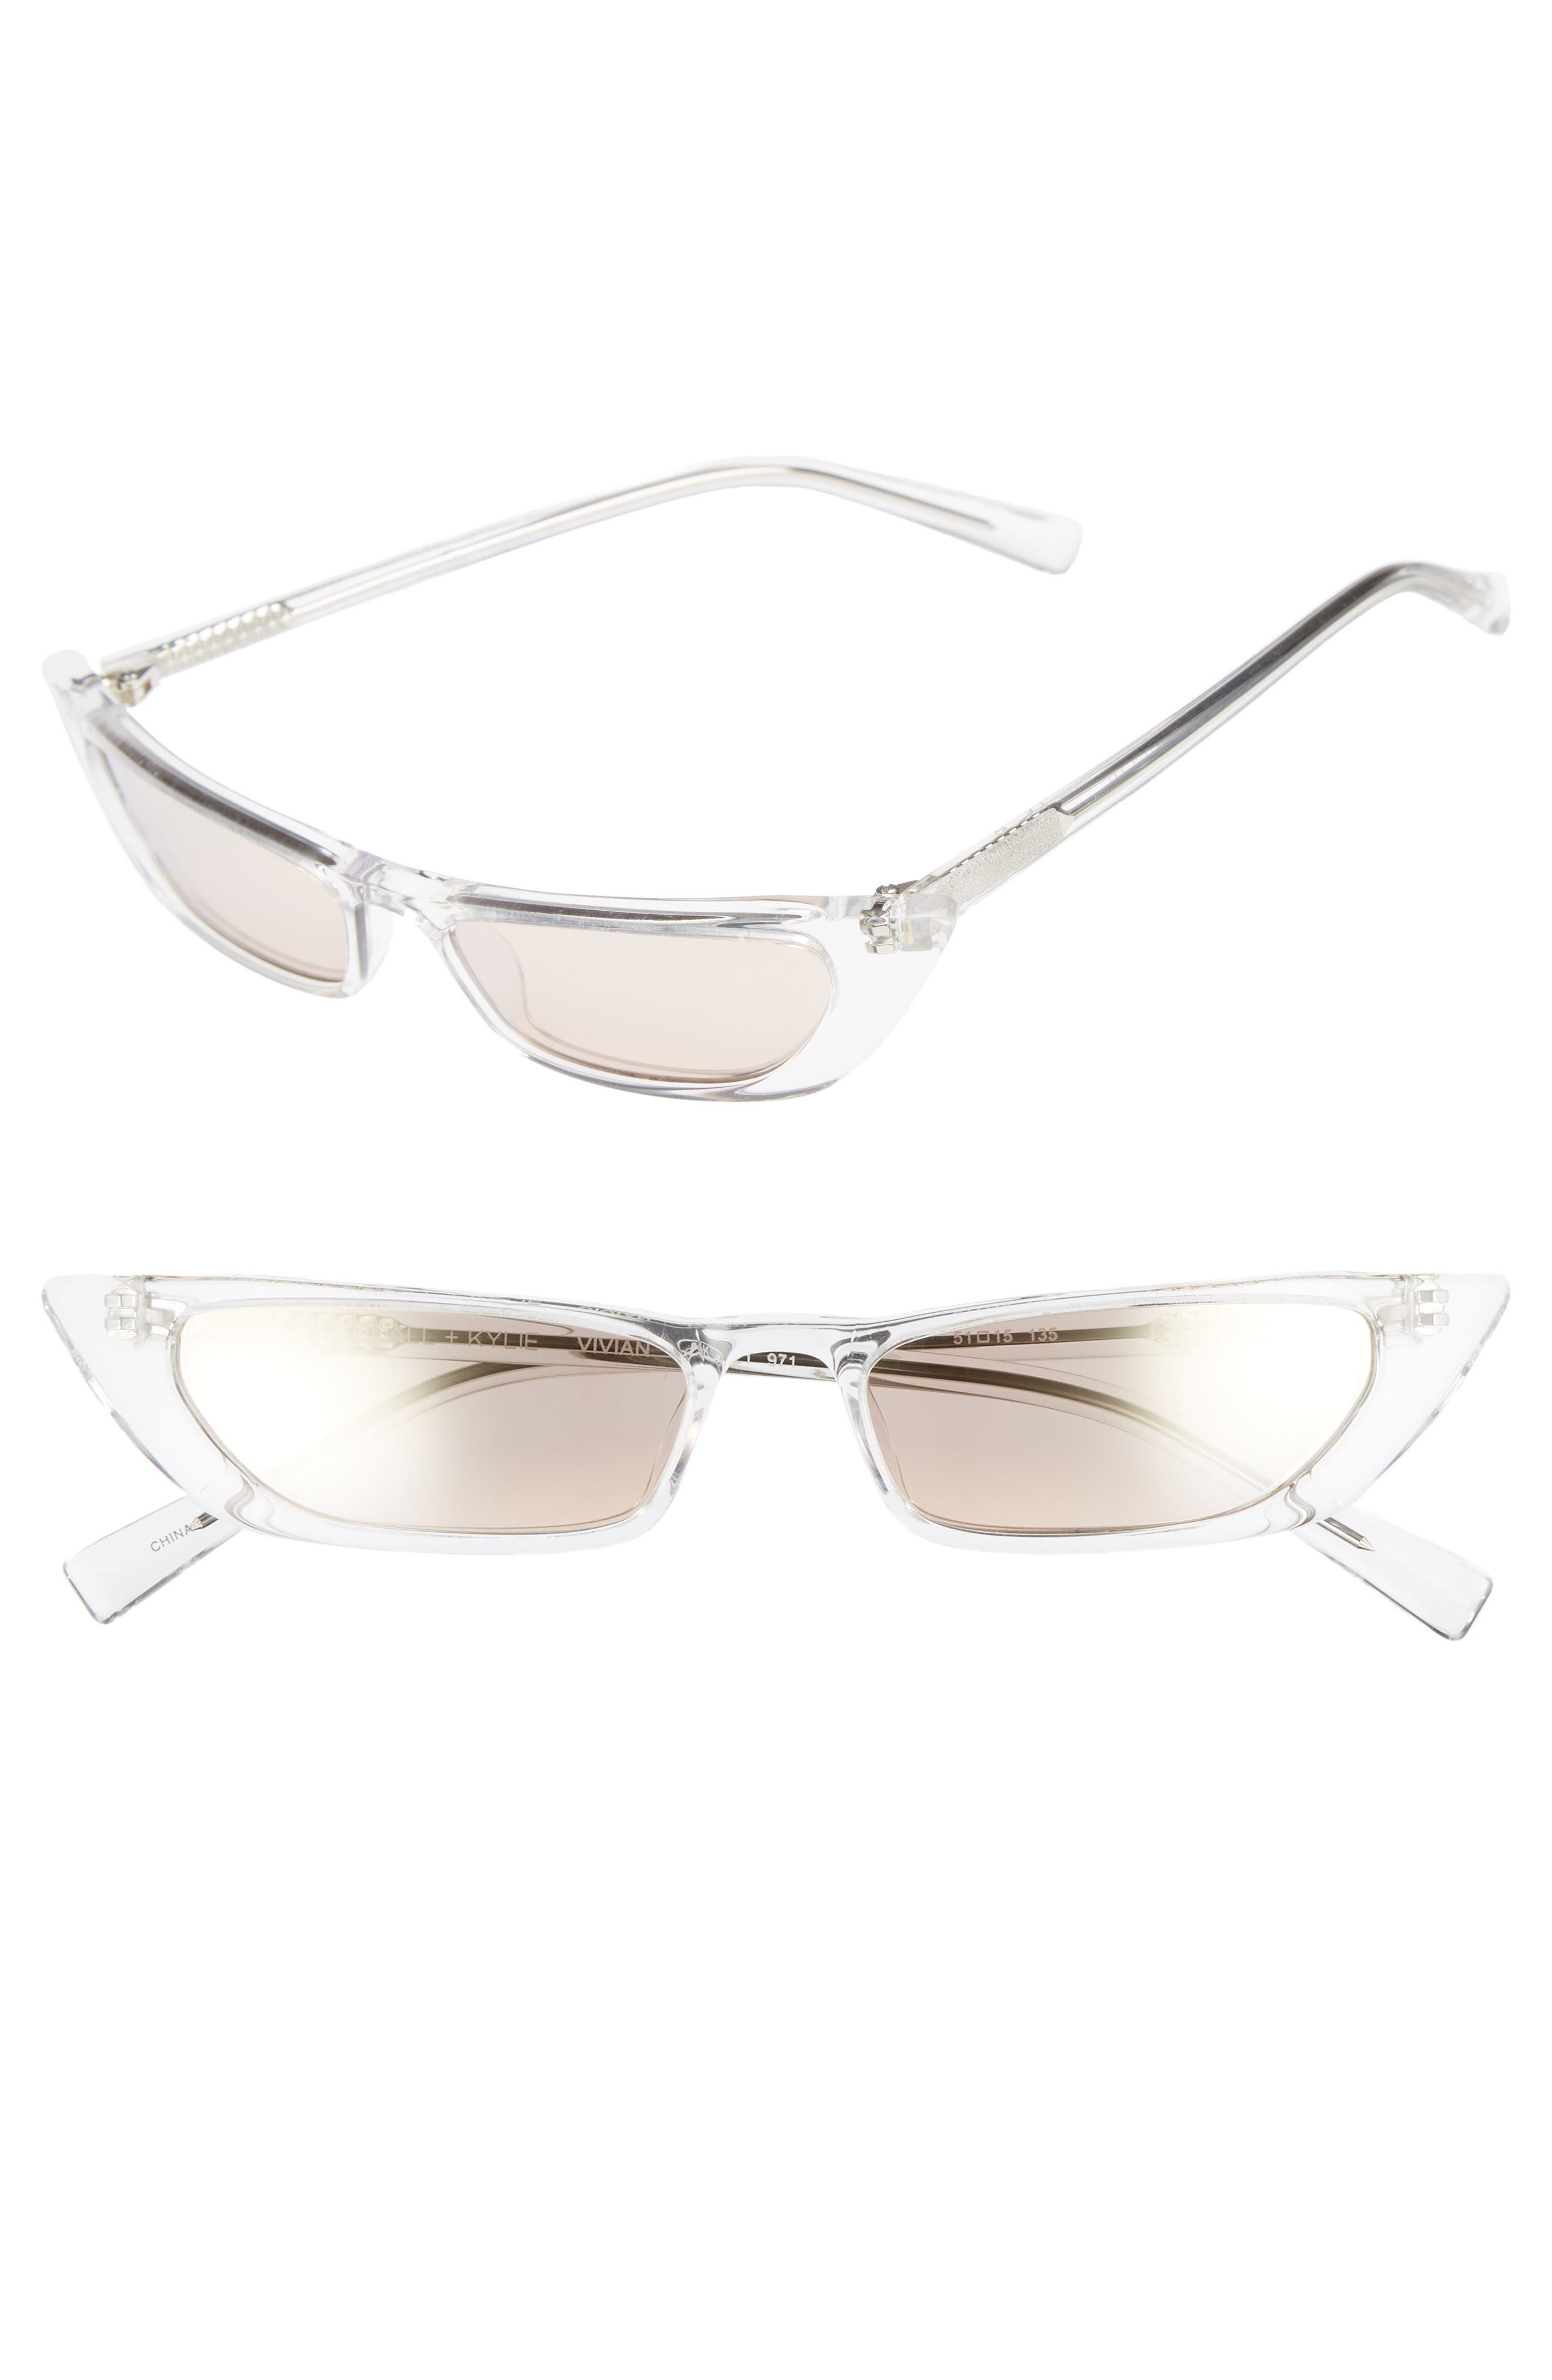 KENDALL + KYLIE Vivian Extreme 51mm Cat Eye Sunglasses, Main, color, 106